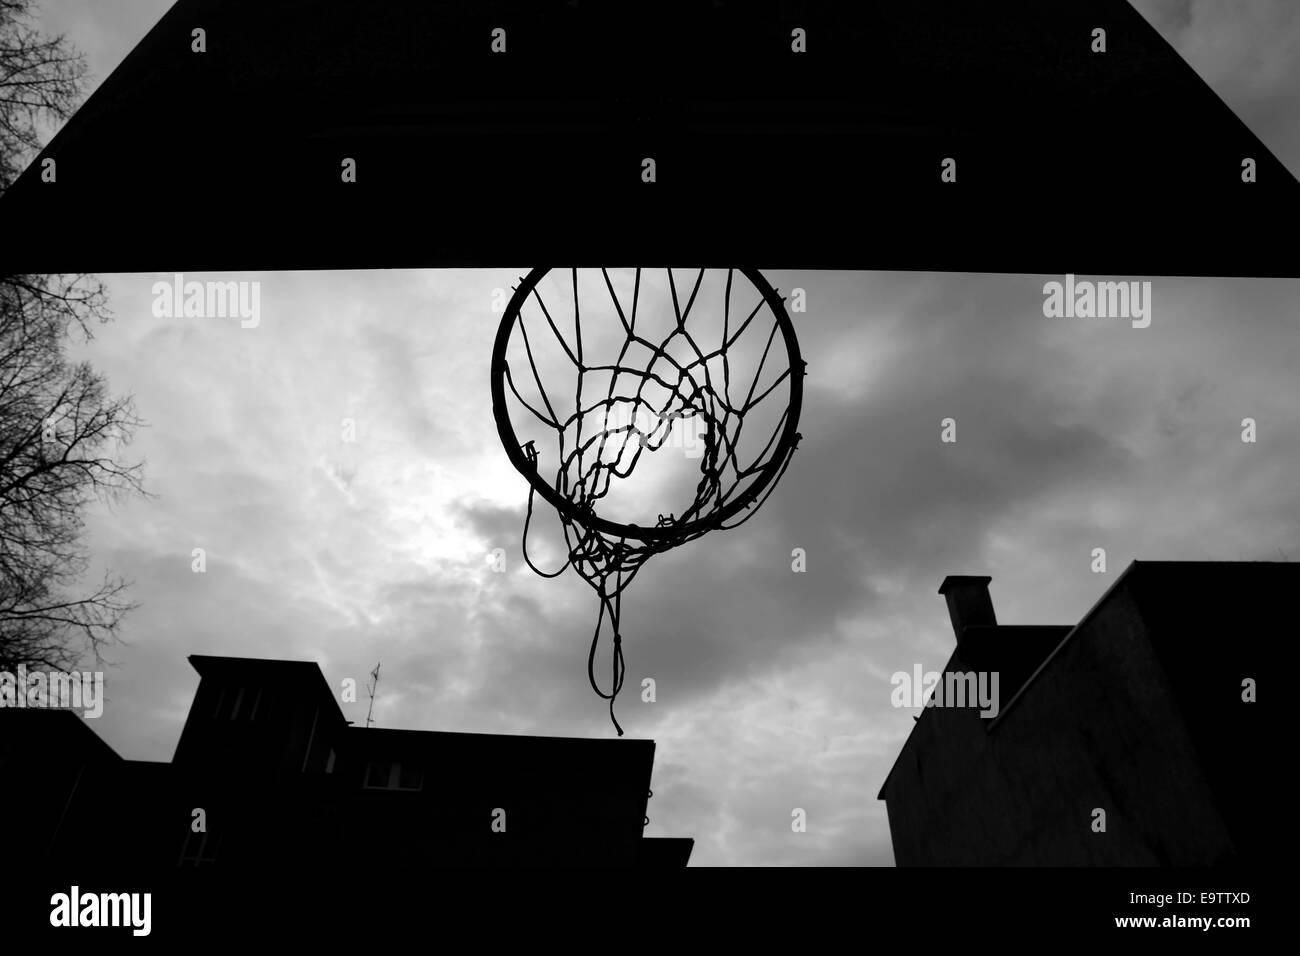 A silhouette of a basketball hoop at playground, taken from below - Stock Image